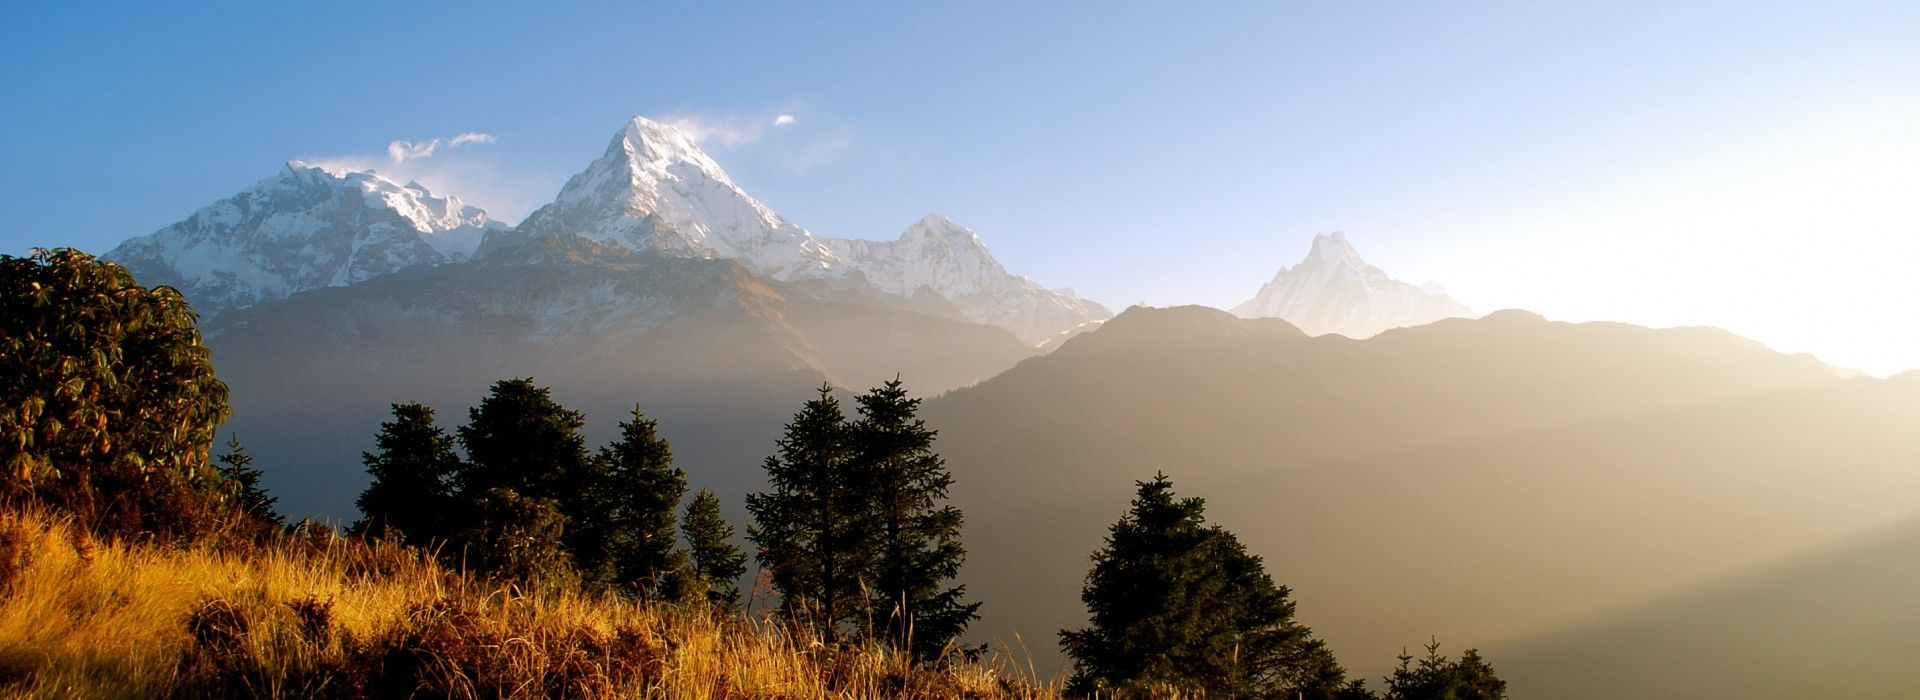 Trekking Tours in Annapurna Circuit trek